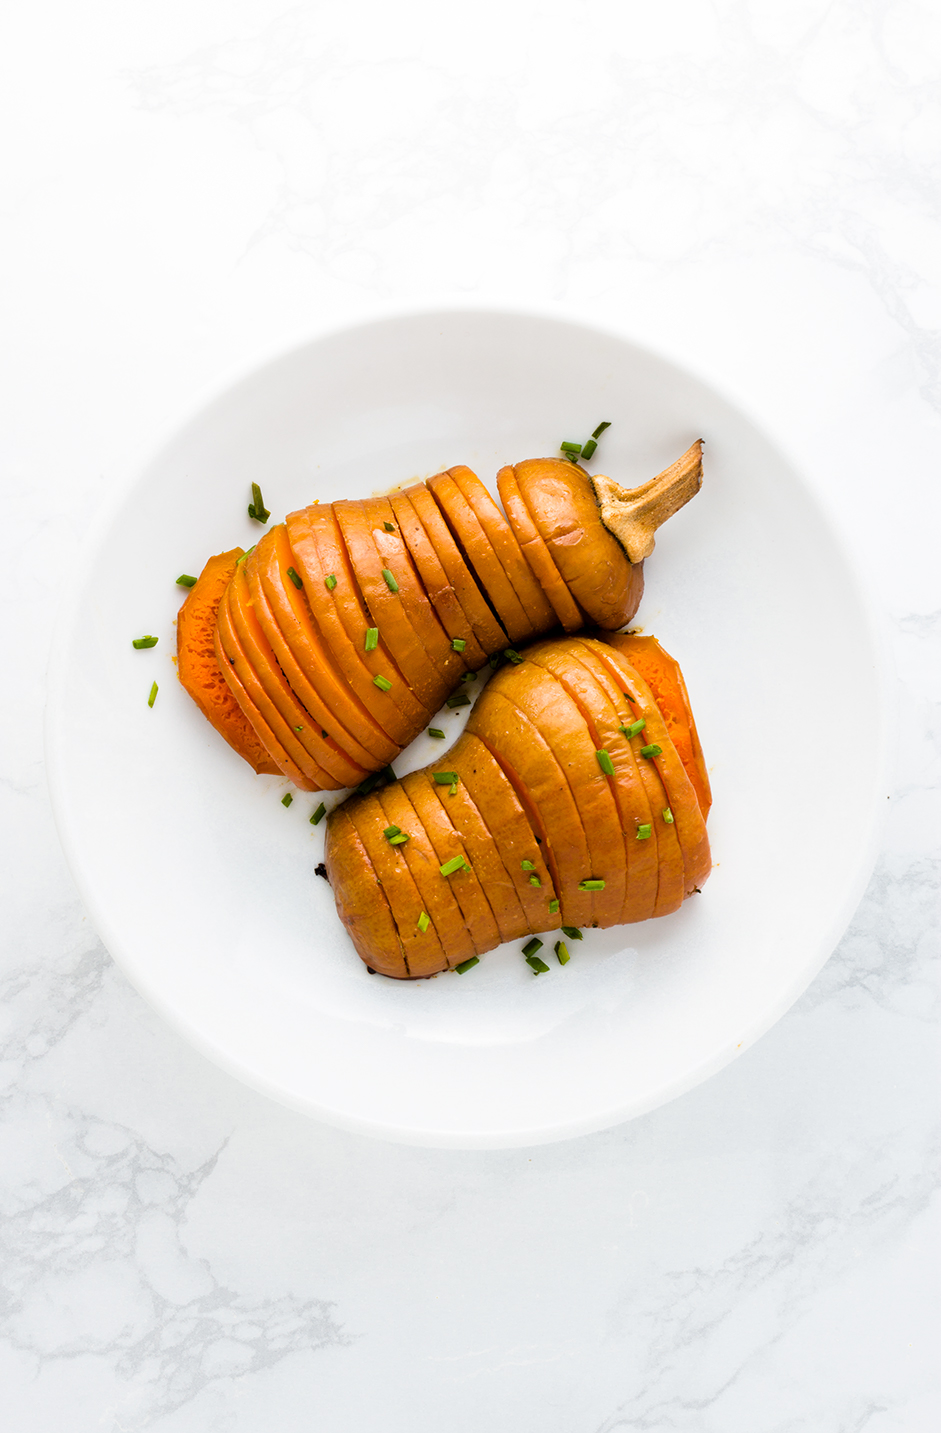 Sweet and salty, these Maple Miso Honeynut Squash are adorable and delicious.